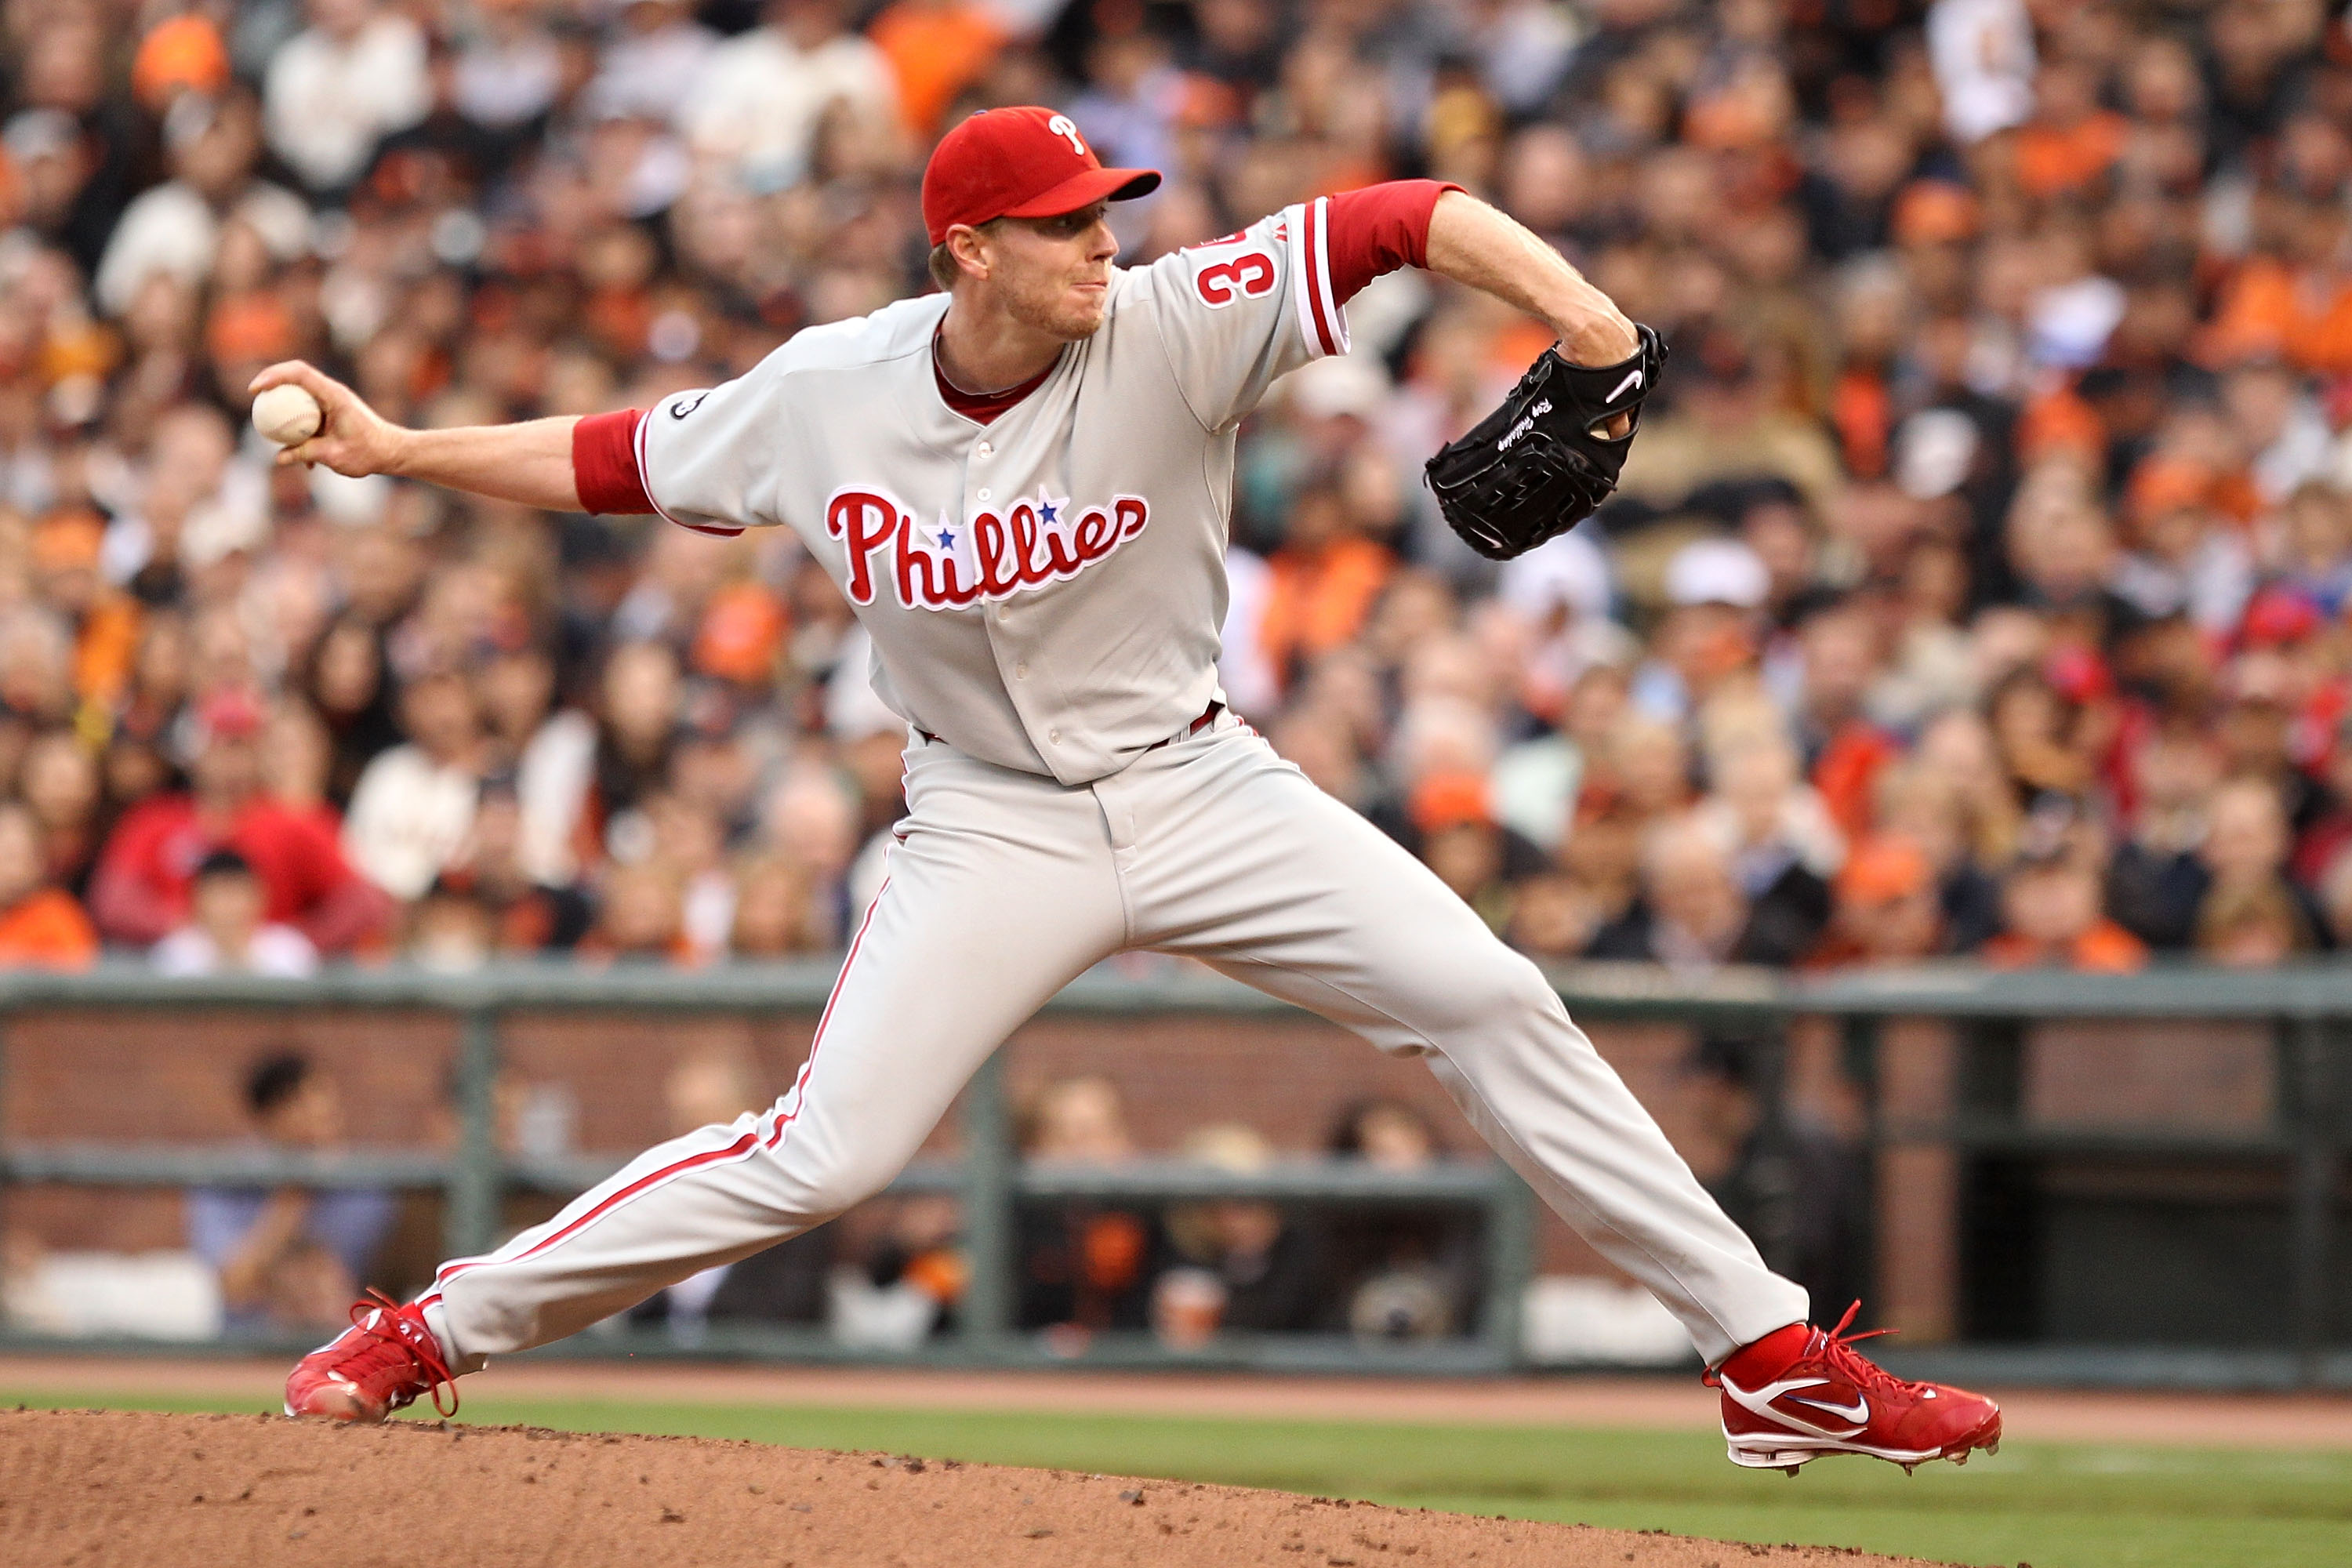 SAN FRANCISCO - OCTOBER 21:  Roy Halladay #34 of the Philadelphia Phillies throws a pitch against the San Francisco Giants in Game Five of the NLCS during the 2010 MLB Playoffs at AT&T Park on October 21, 2010 in San Francisco, California.  (Photo by Ezra